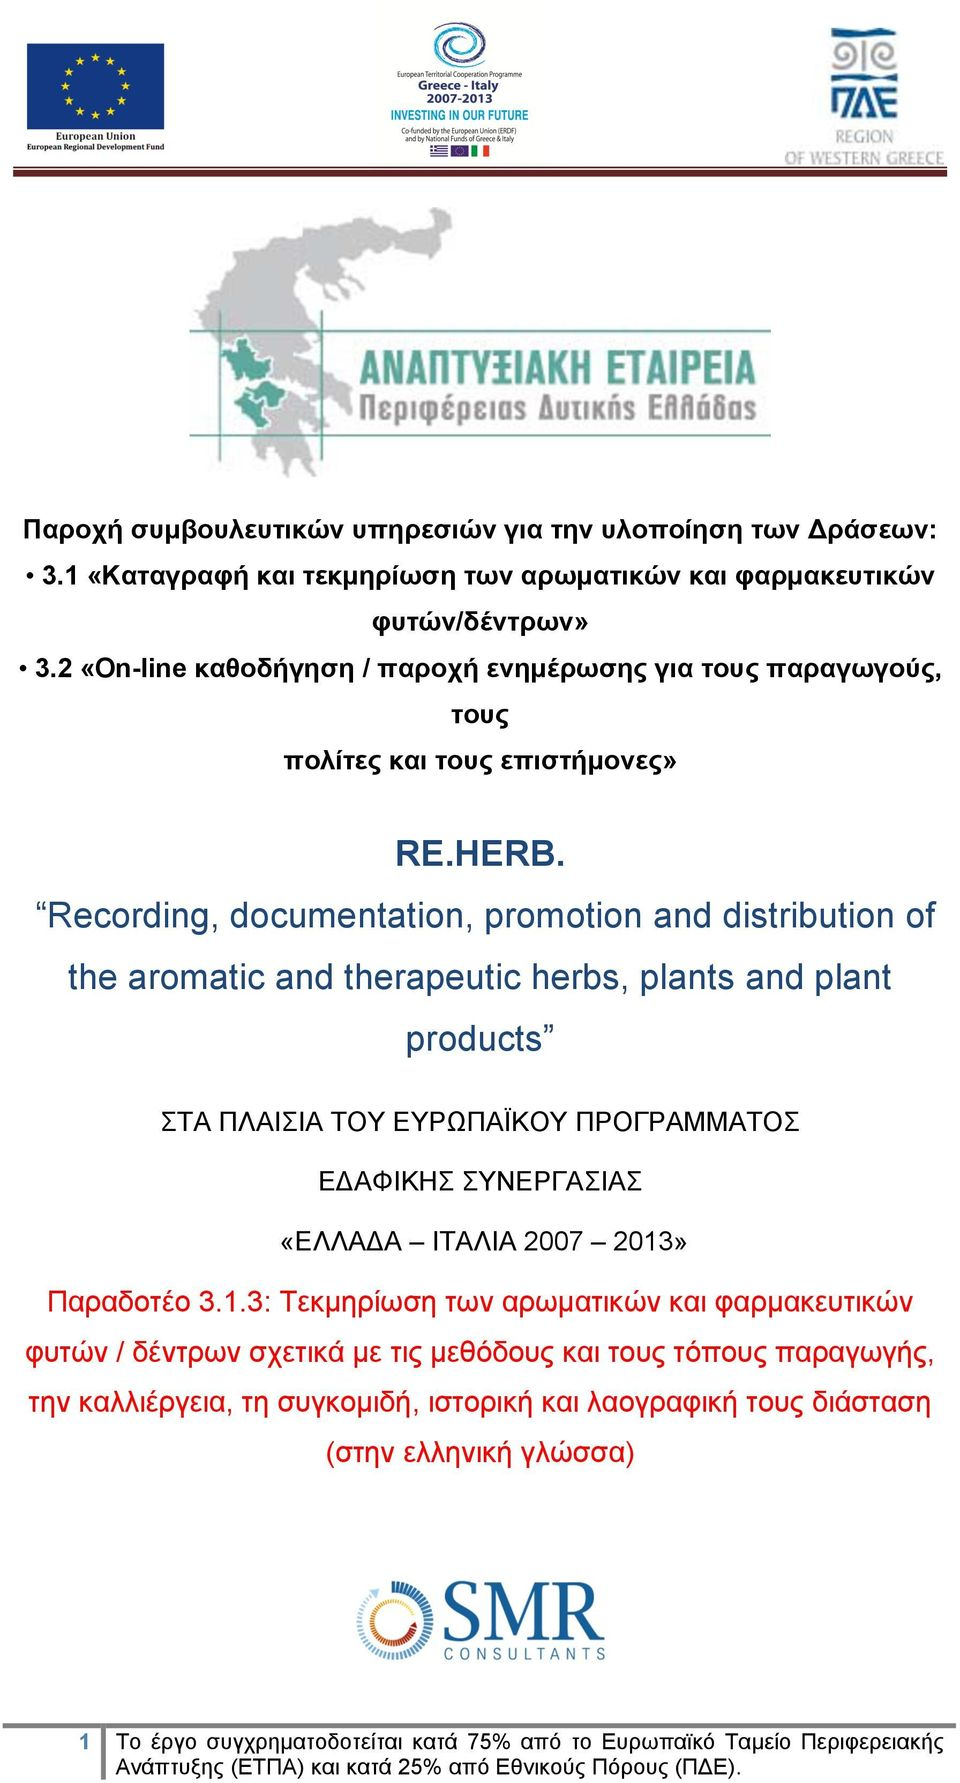 Recording, documentation, promotion and distribution of the aromatic and therapeutic herbs, plants and plant products ΣΤΑ ΠΛΑΙΣΙΑ ΤΟΥ ΕΥΡΩΠΑΪΚΟΥ ΠΡΟΓΡΑΜΜΑΤΟΣ ΕΔΑΦΙΚΗΣ ΣΥΝΕΡΓΑΣΙΑΣ «ΕΛΛΑΔΑ